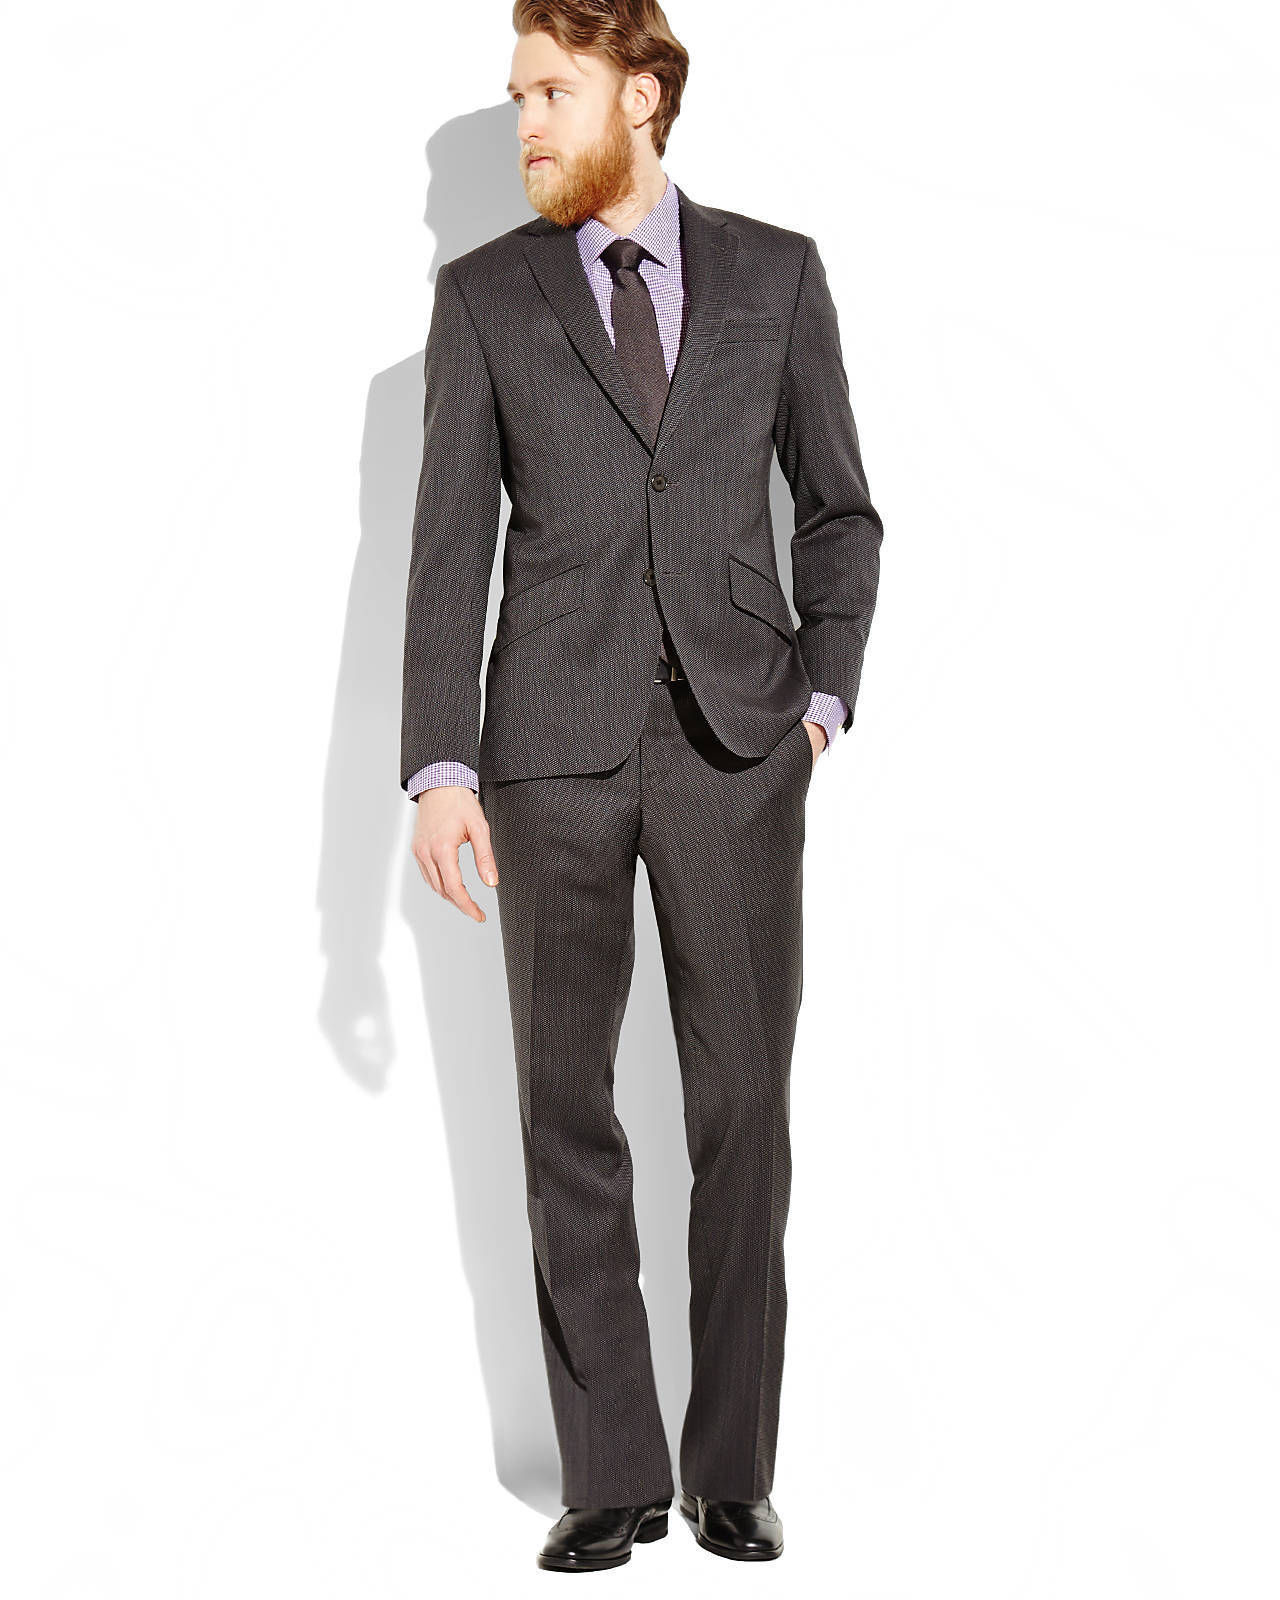 Top 10 Designer Suits for Men | eBay